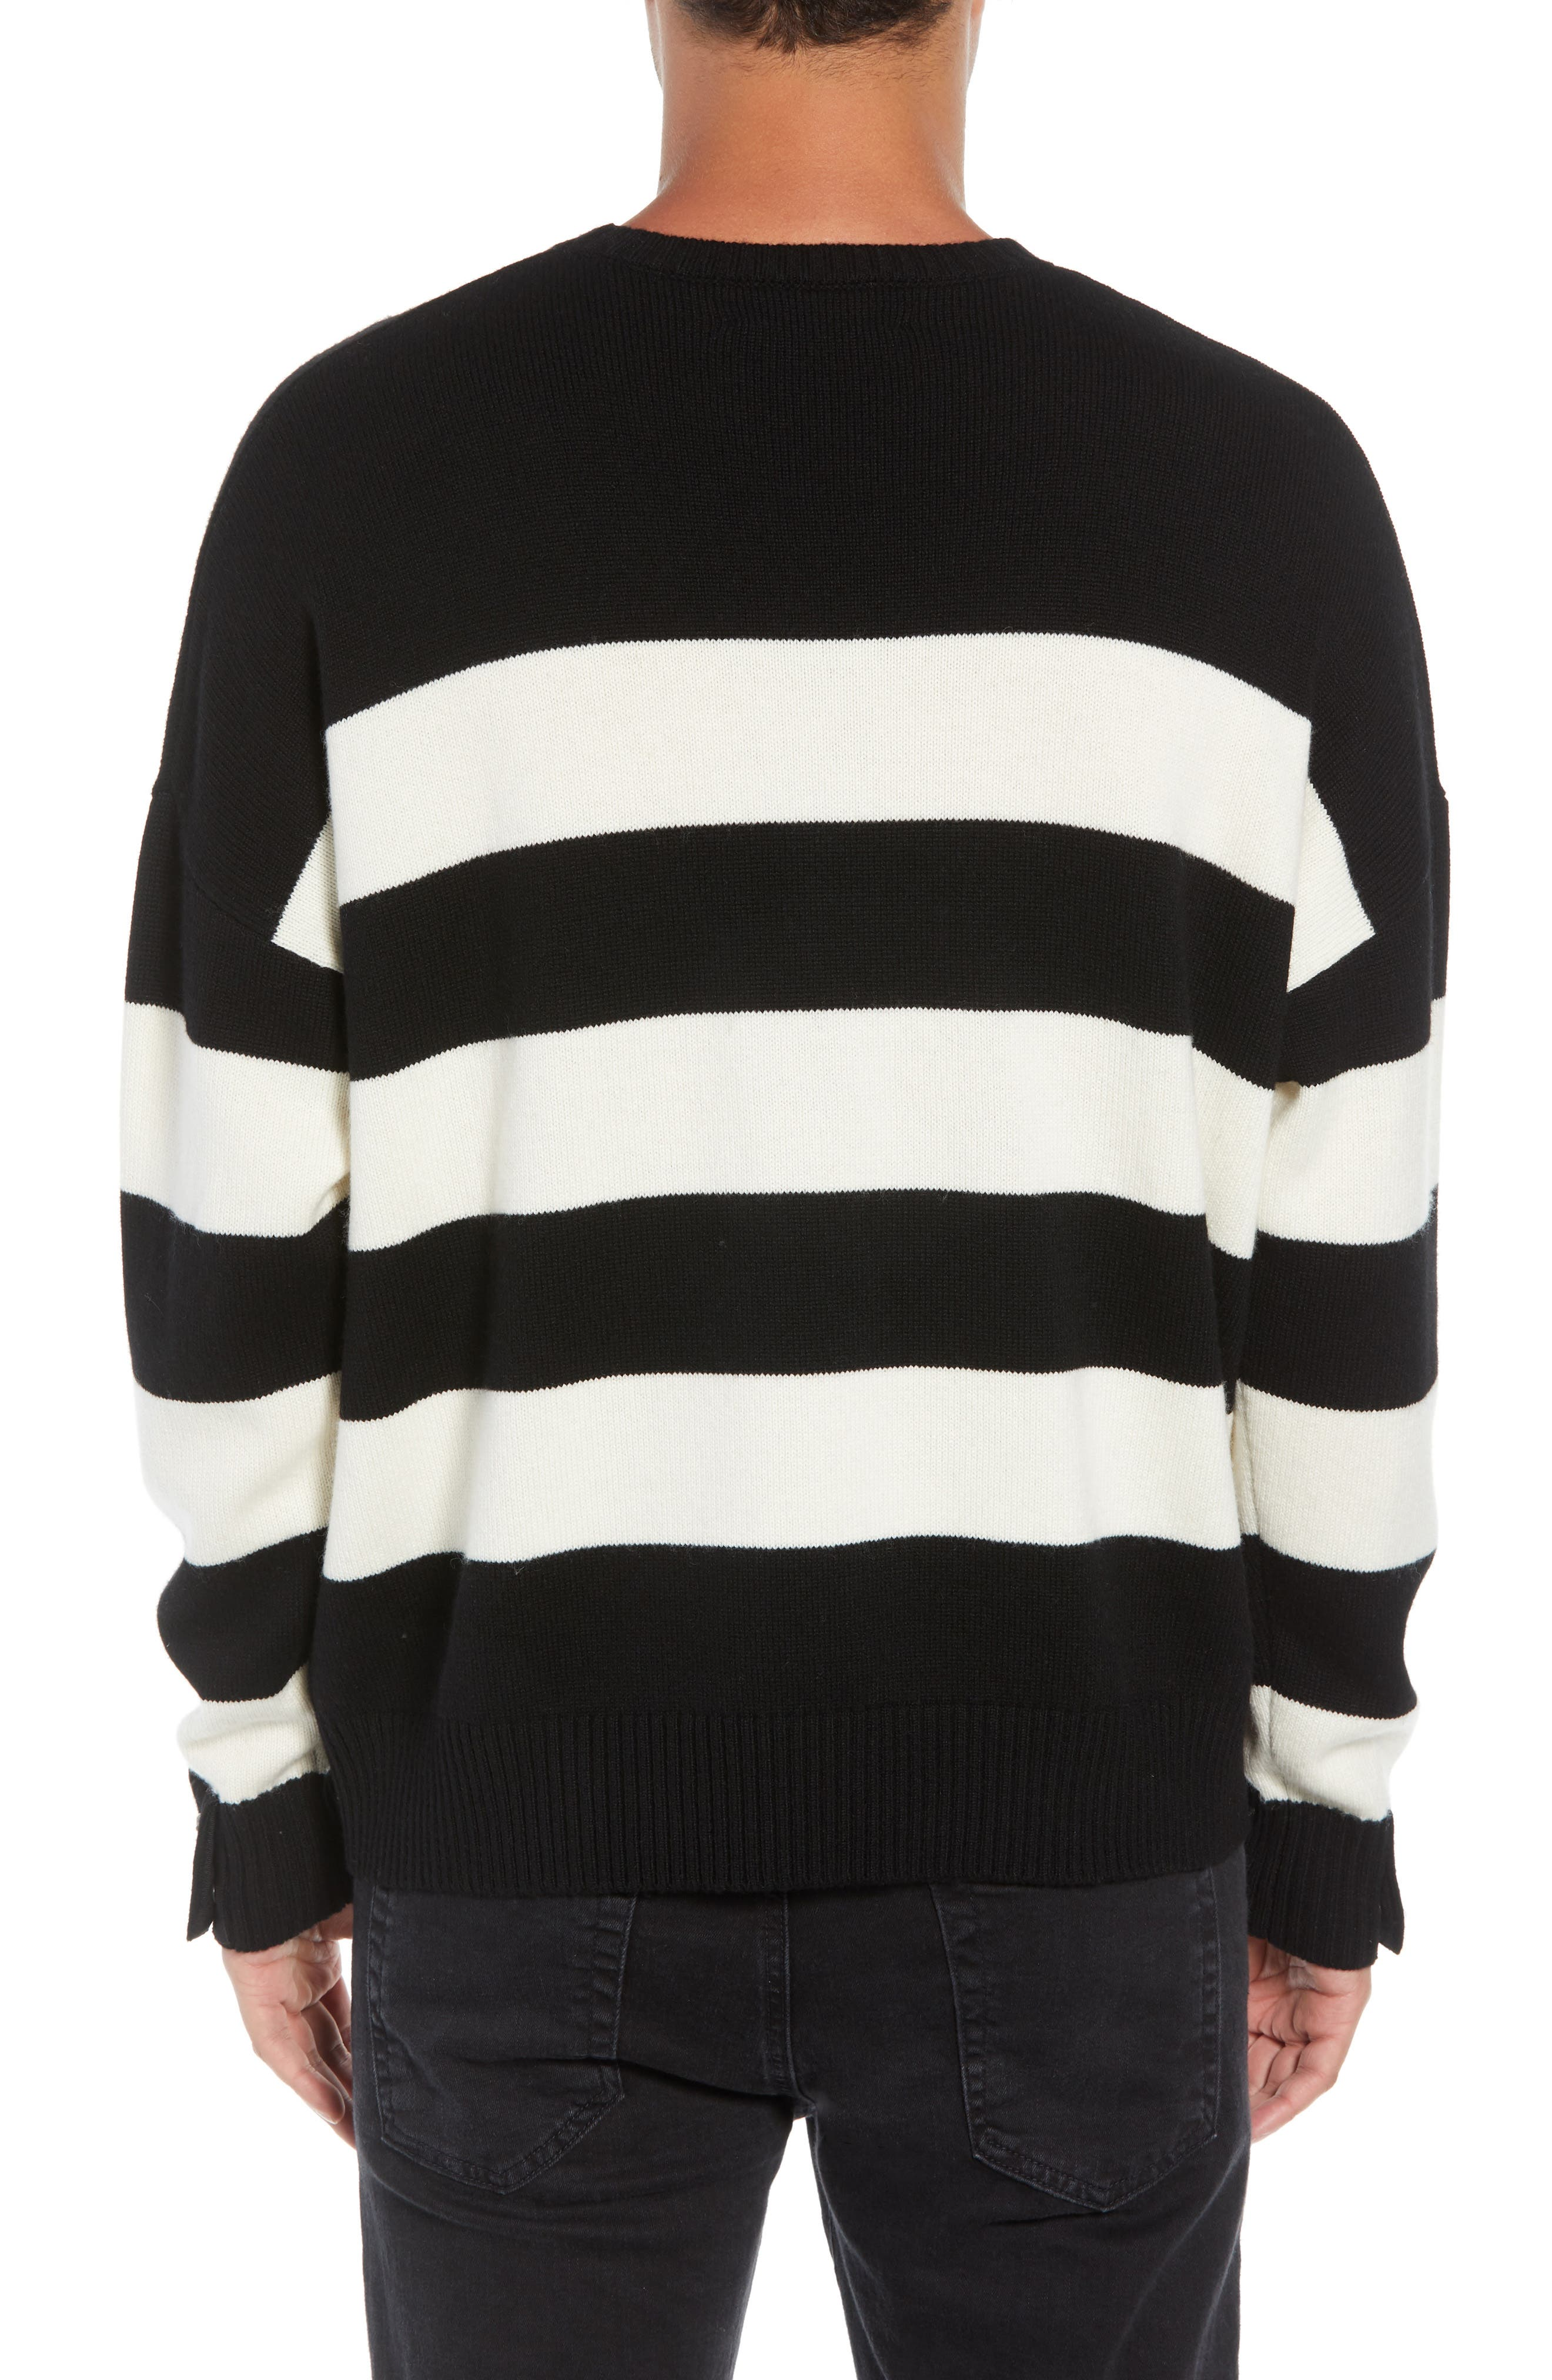 THE KOOPLES,                             Classic Fit Striped Sweater,                             Alternate thumbnail 2, color,                             001